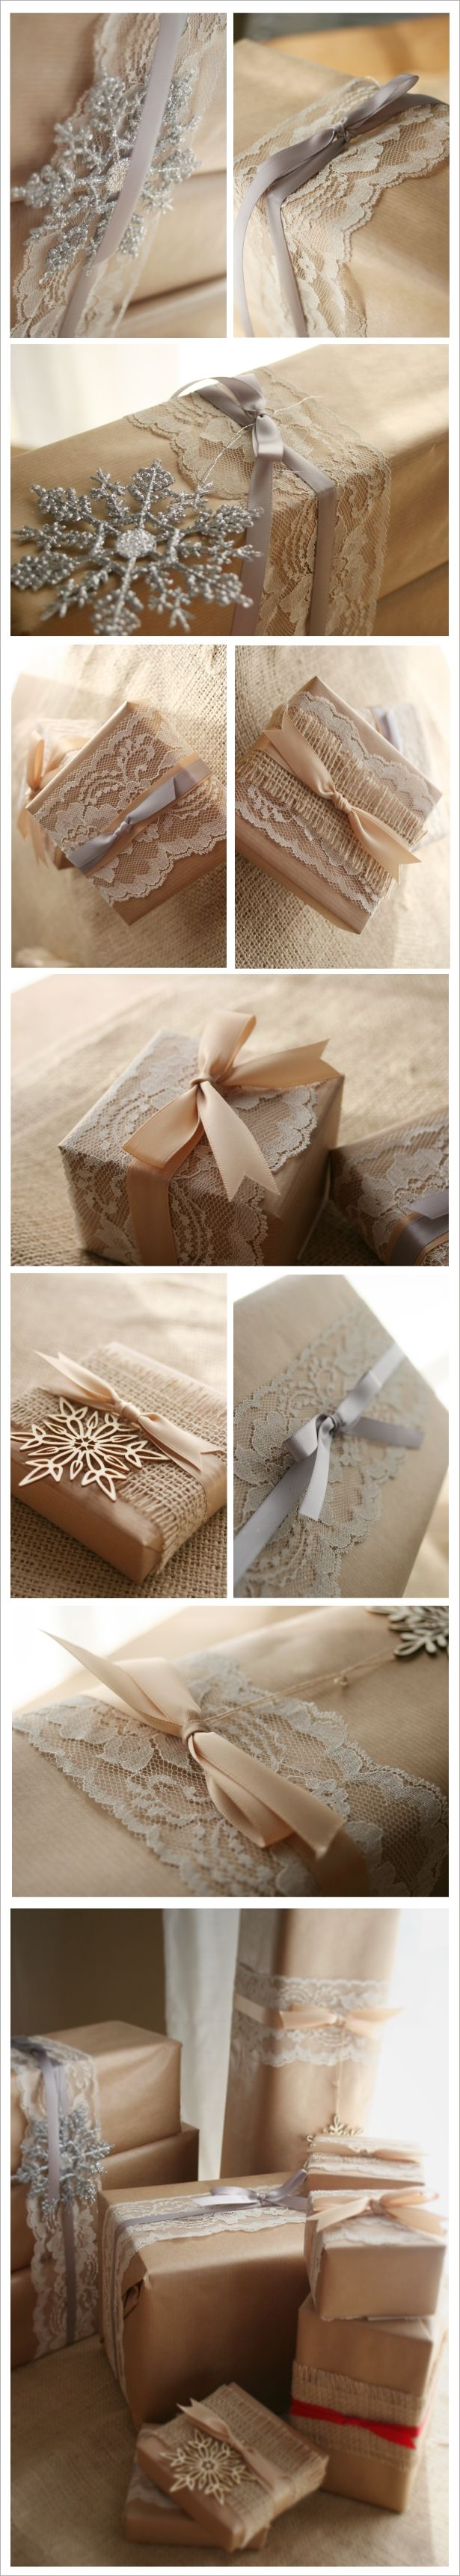 best ideas about brown paper wrapping creative 17 best ideas about brown paper wrapping creative gifts wrapping ideas and gift packaging